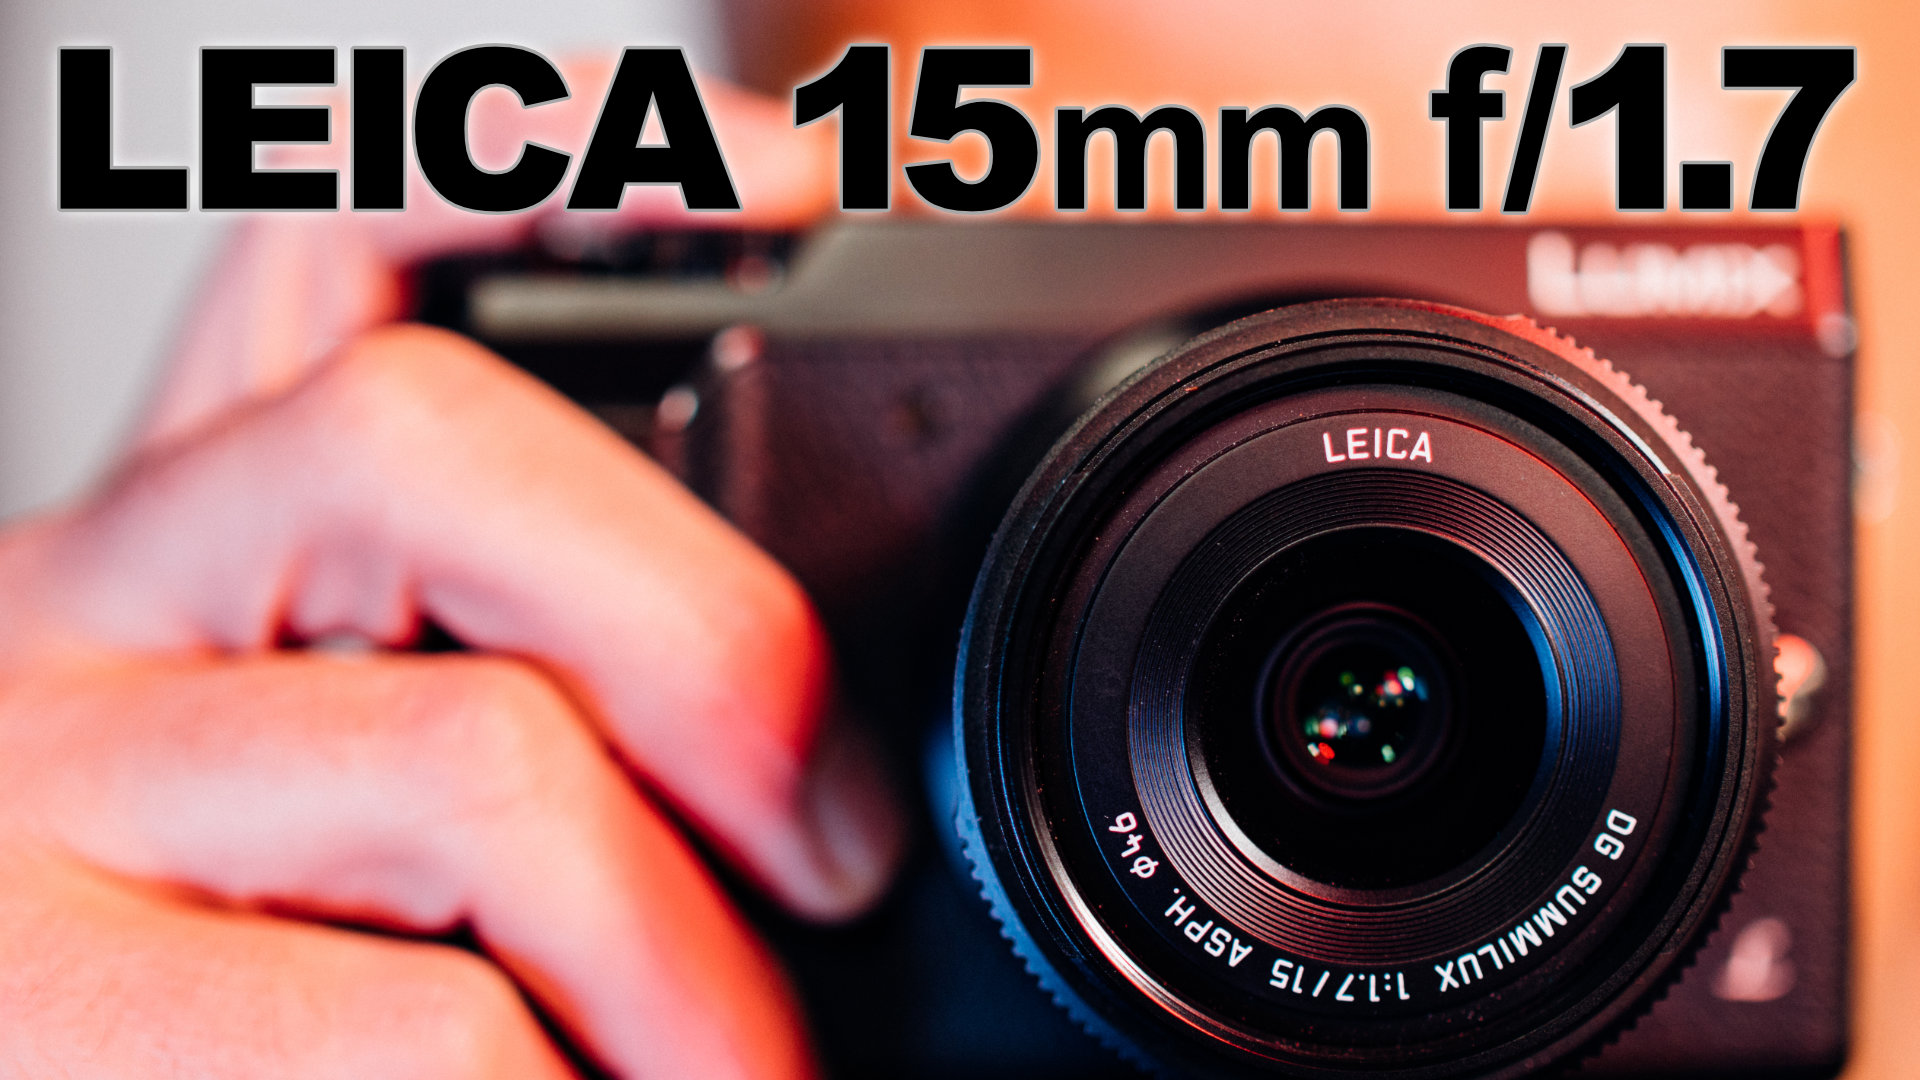 Leica 15mm f/1.7 Panasonic Micro Four Thirds Lens ▶︎ Thoughts and Samples After Years of Use